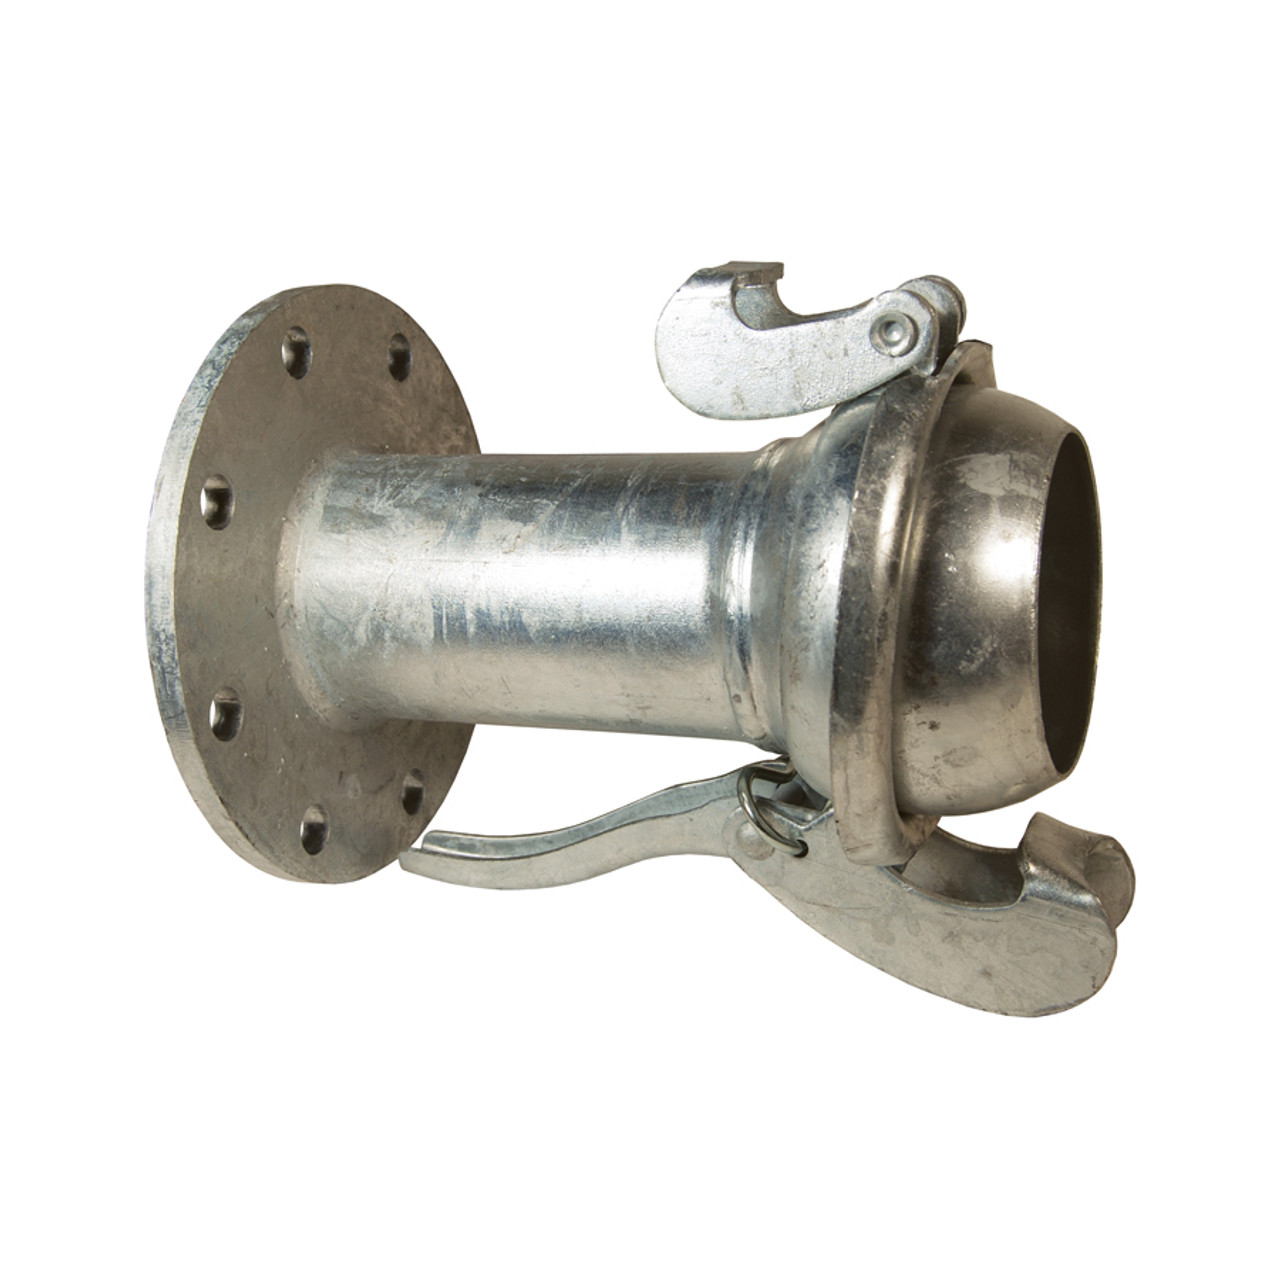 Quick Connect Fittings >> Dixon Type B Male W 150 Asa Flange Quick Connect Fittings John M